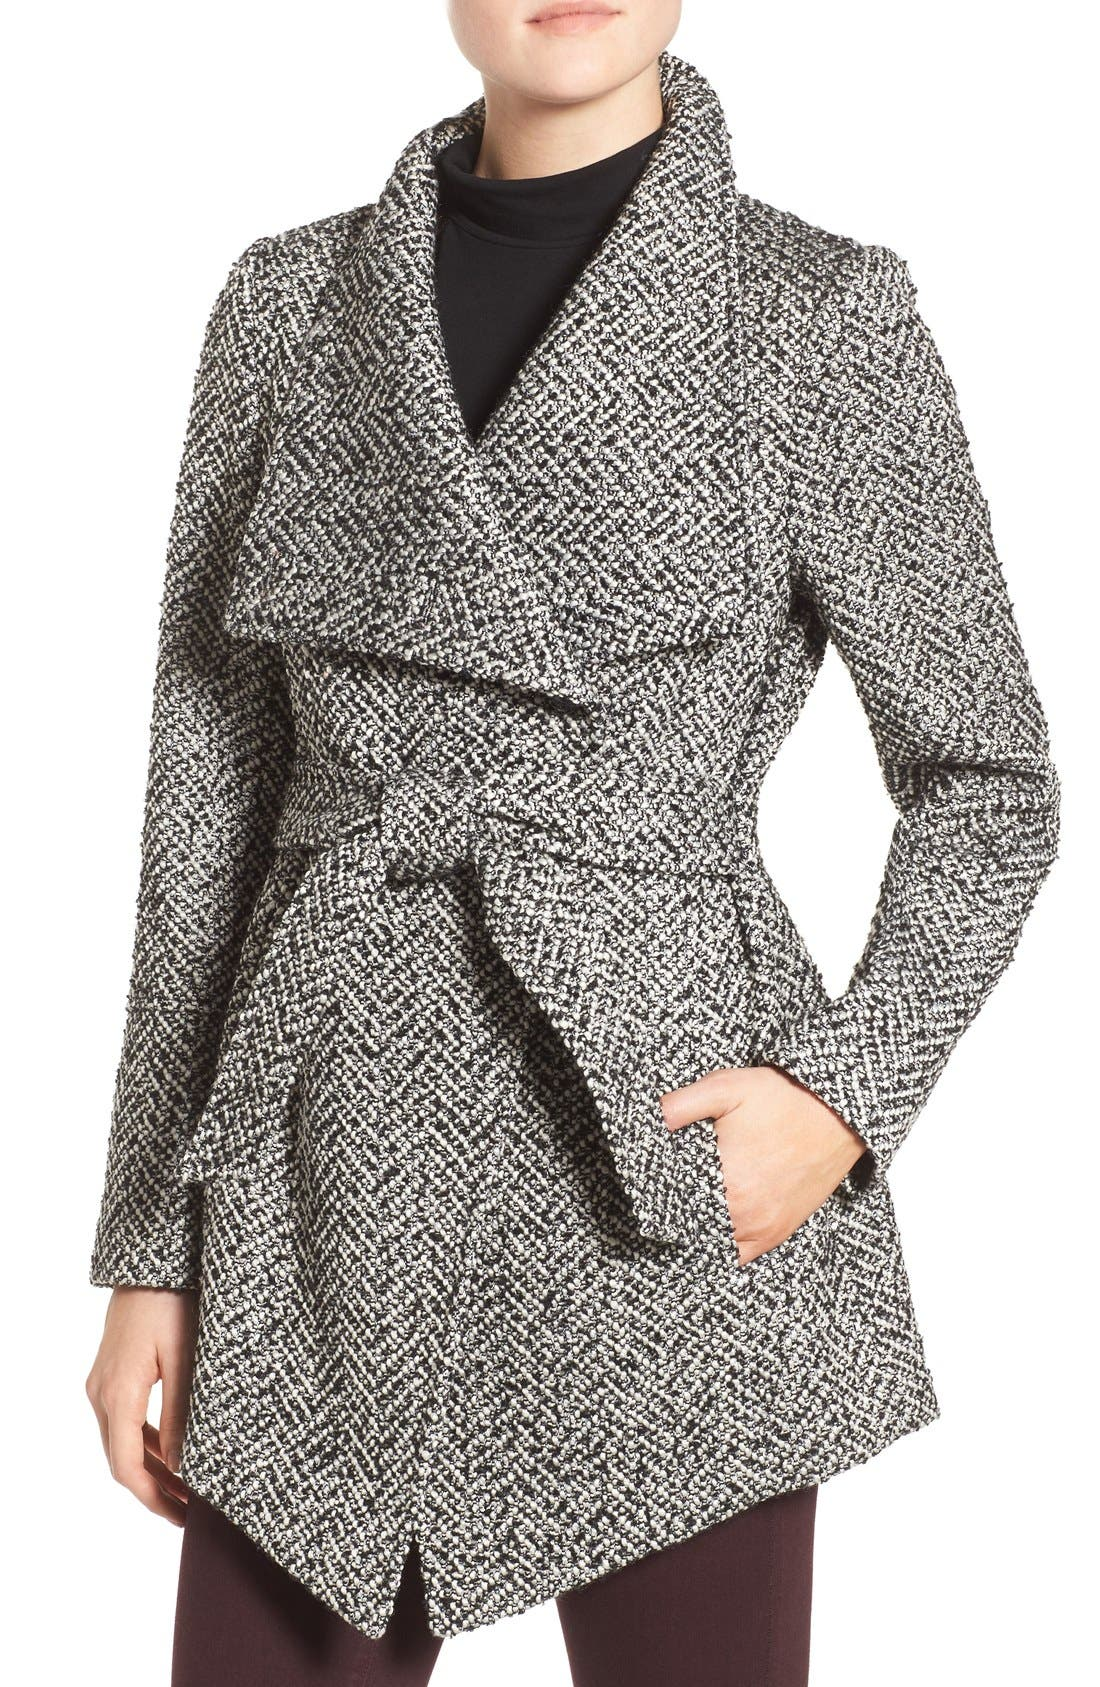 JESSICA SIMPSON Belted Tweed Coat, Main, color, 003